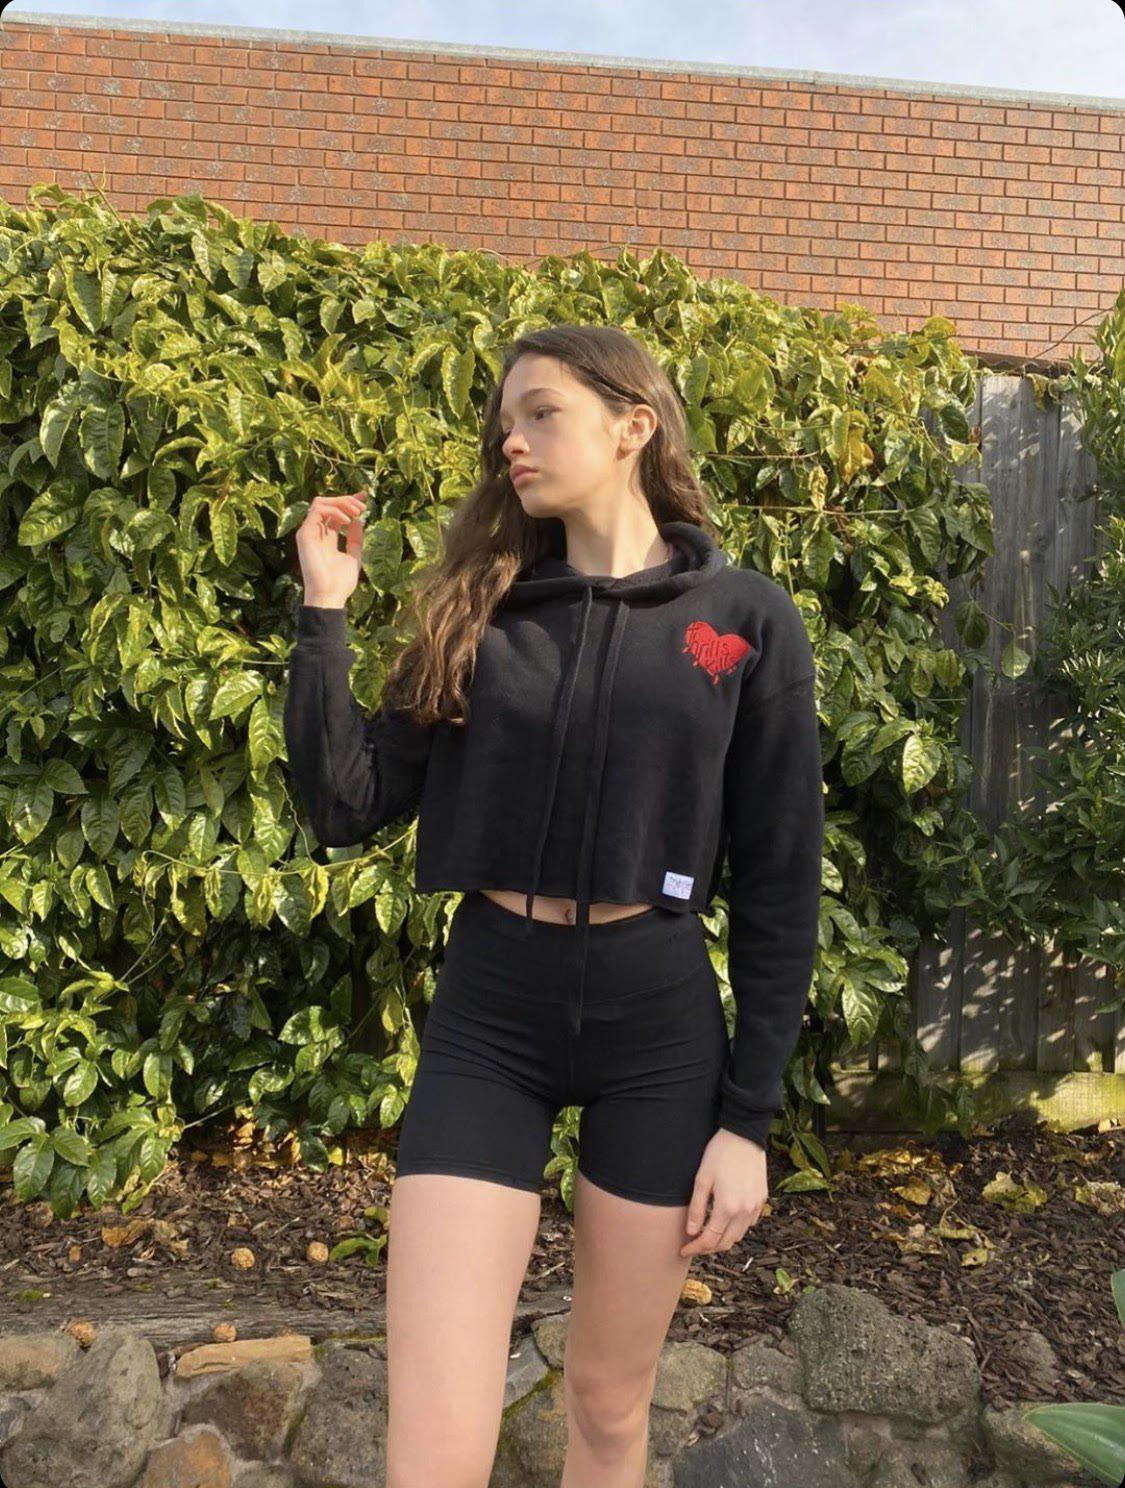 Model pictured showing off her long skinny legs is wearing a Supreme Black Embroidered Love Heart Crop Fleece Hoodie in a garden with green plants in background